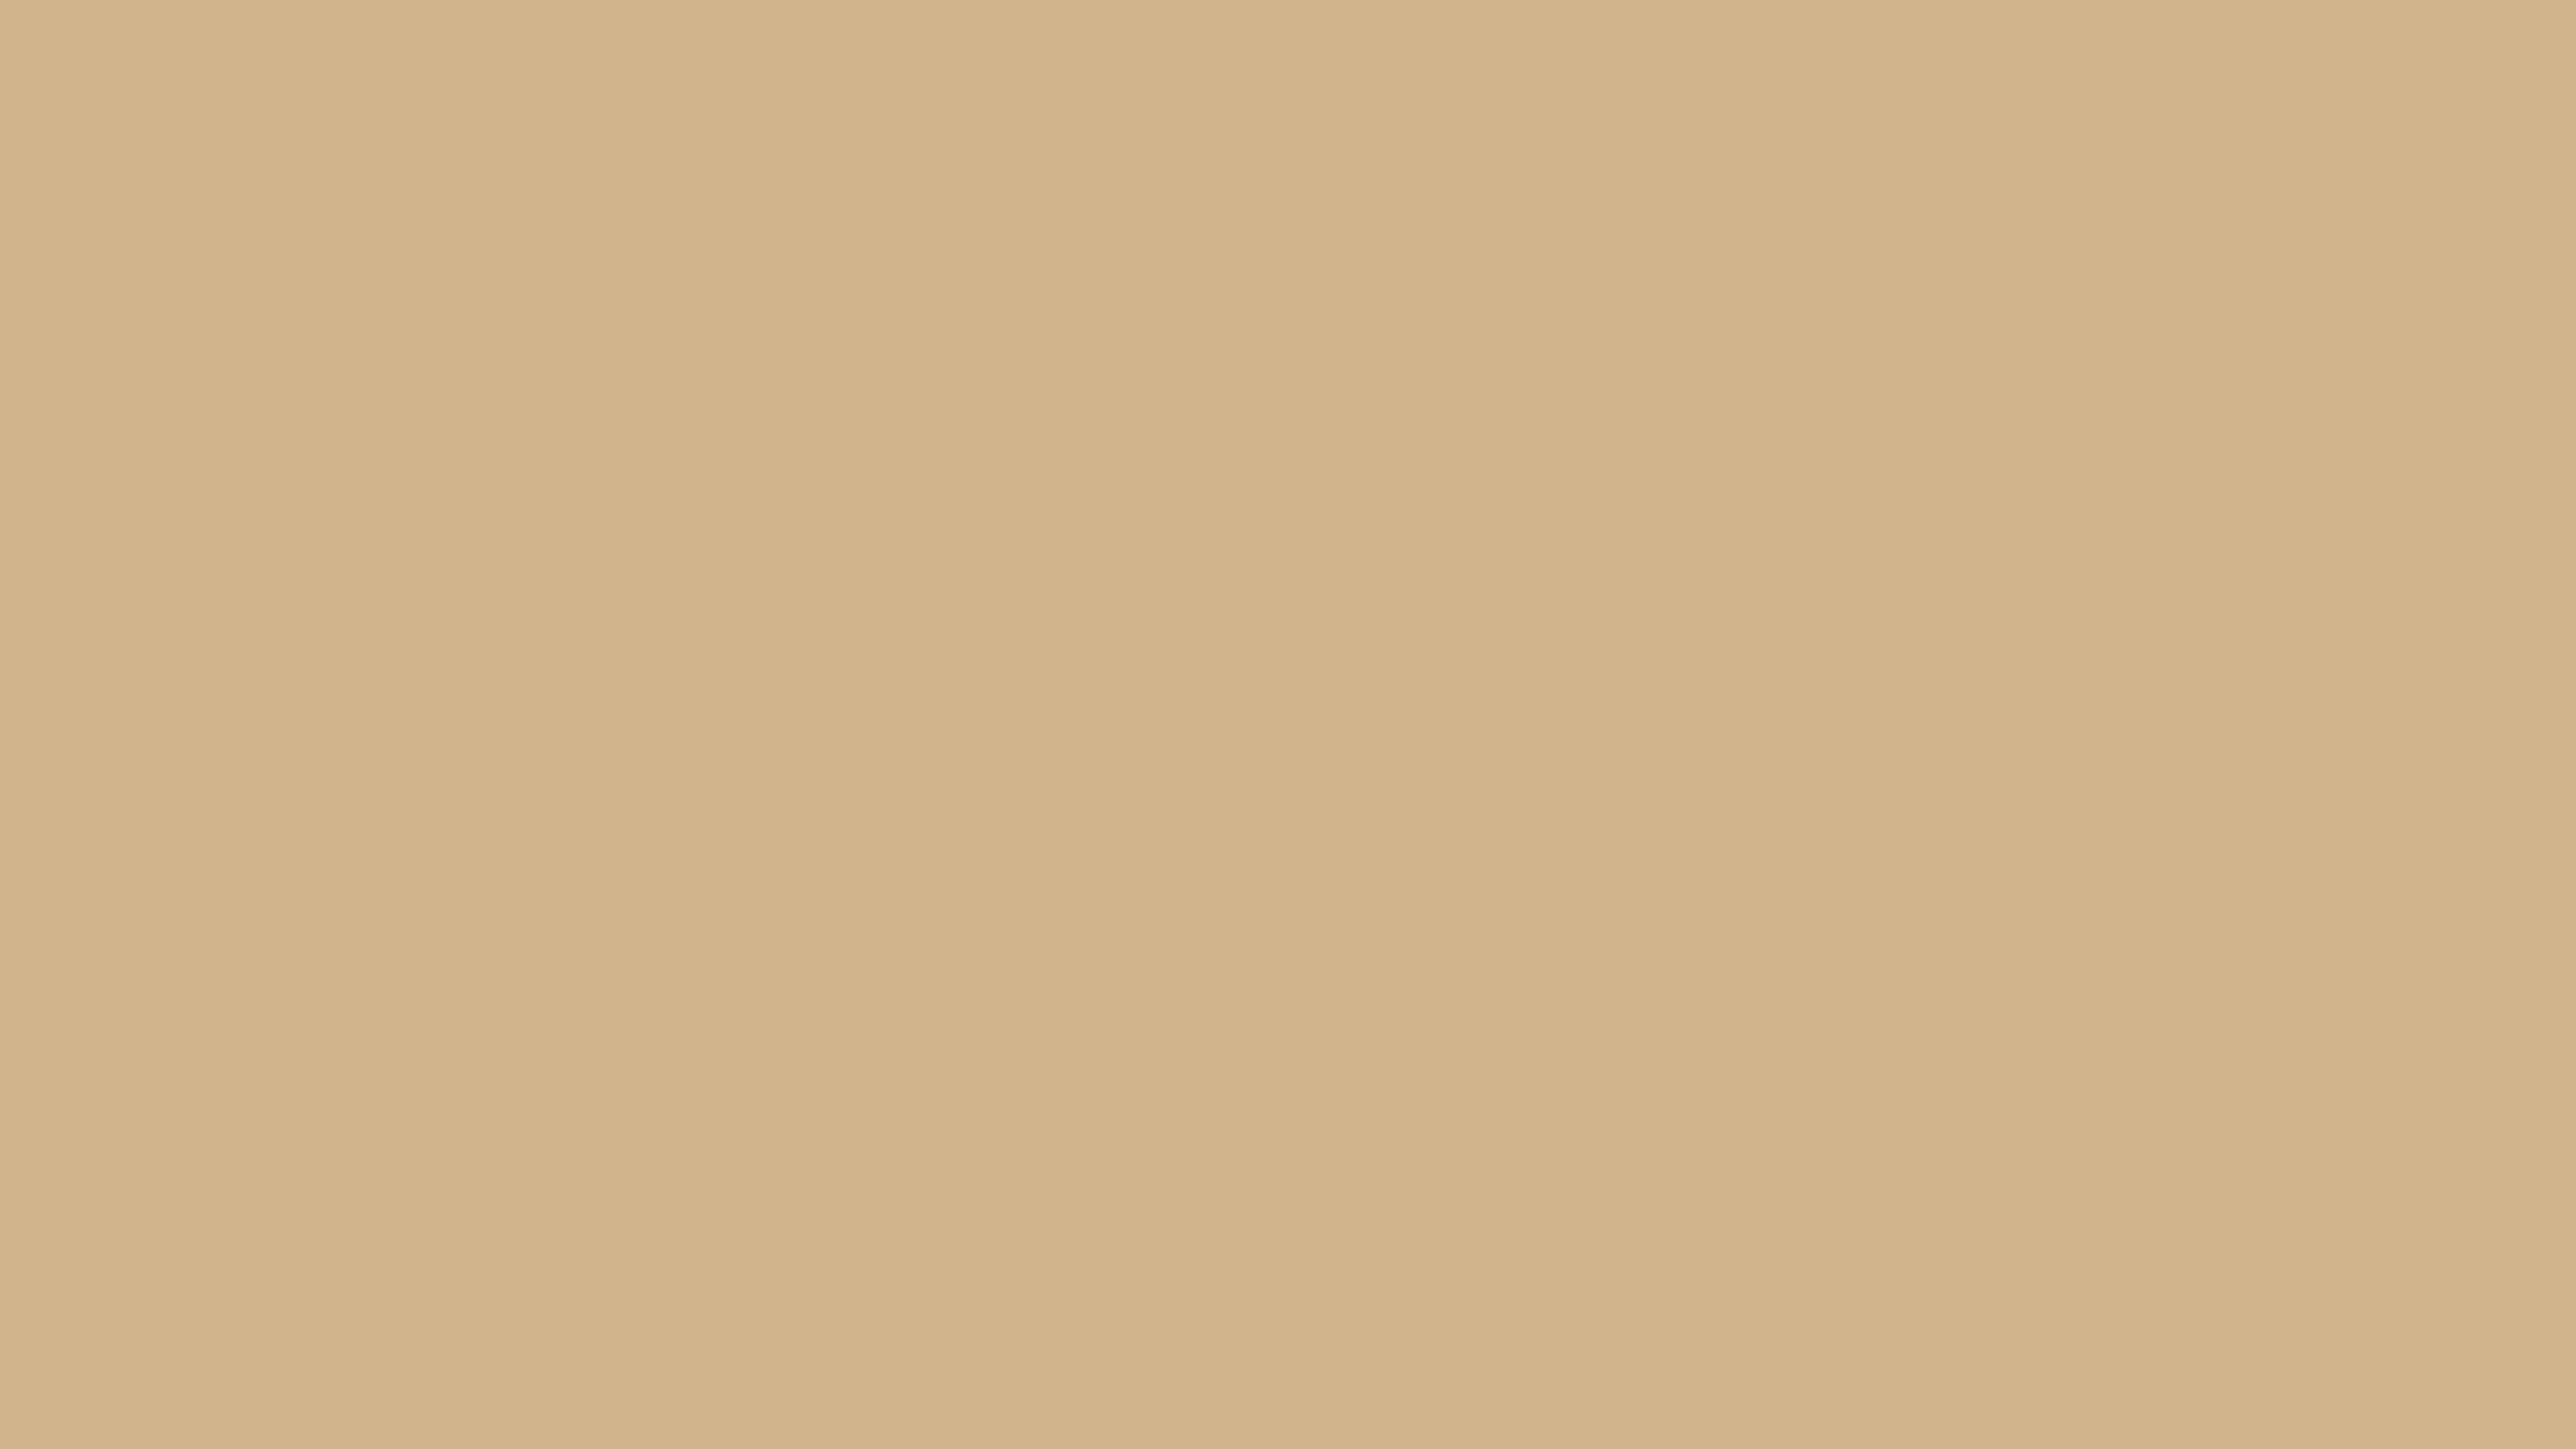 4096x2304 Tan Solid Color Background